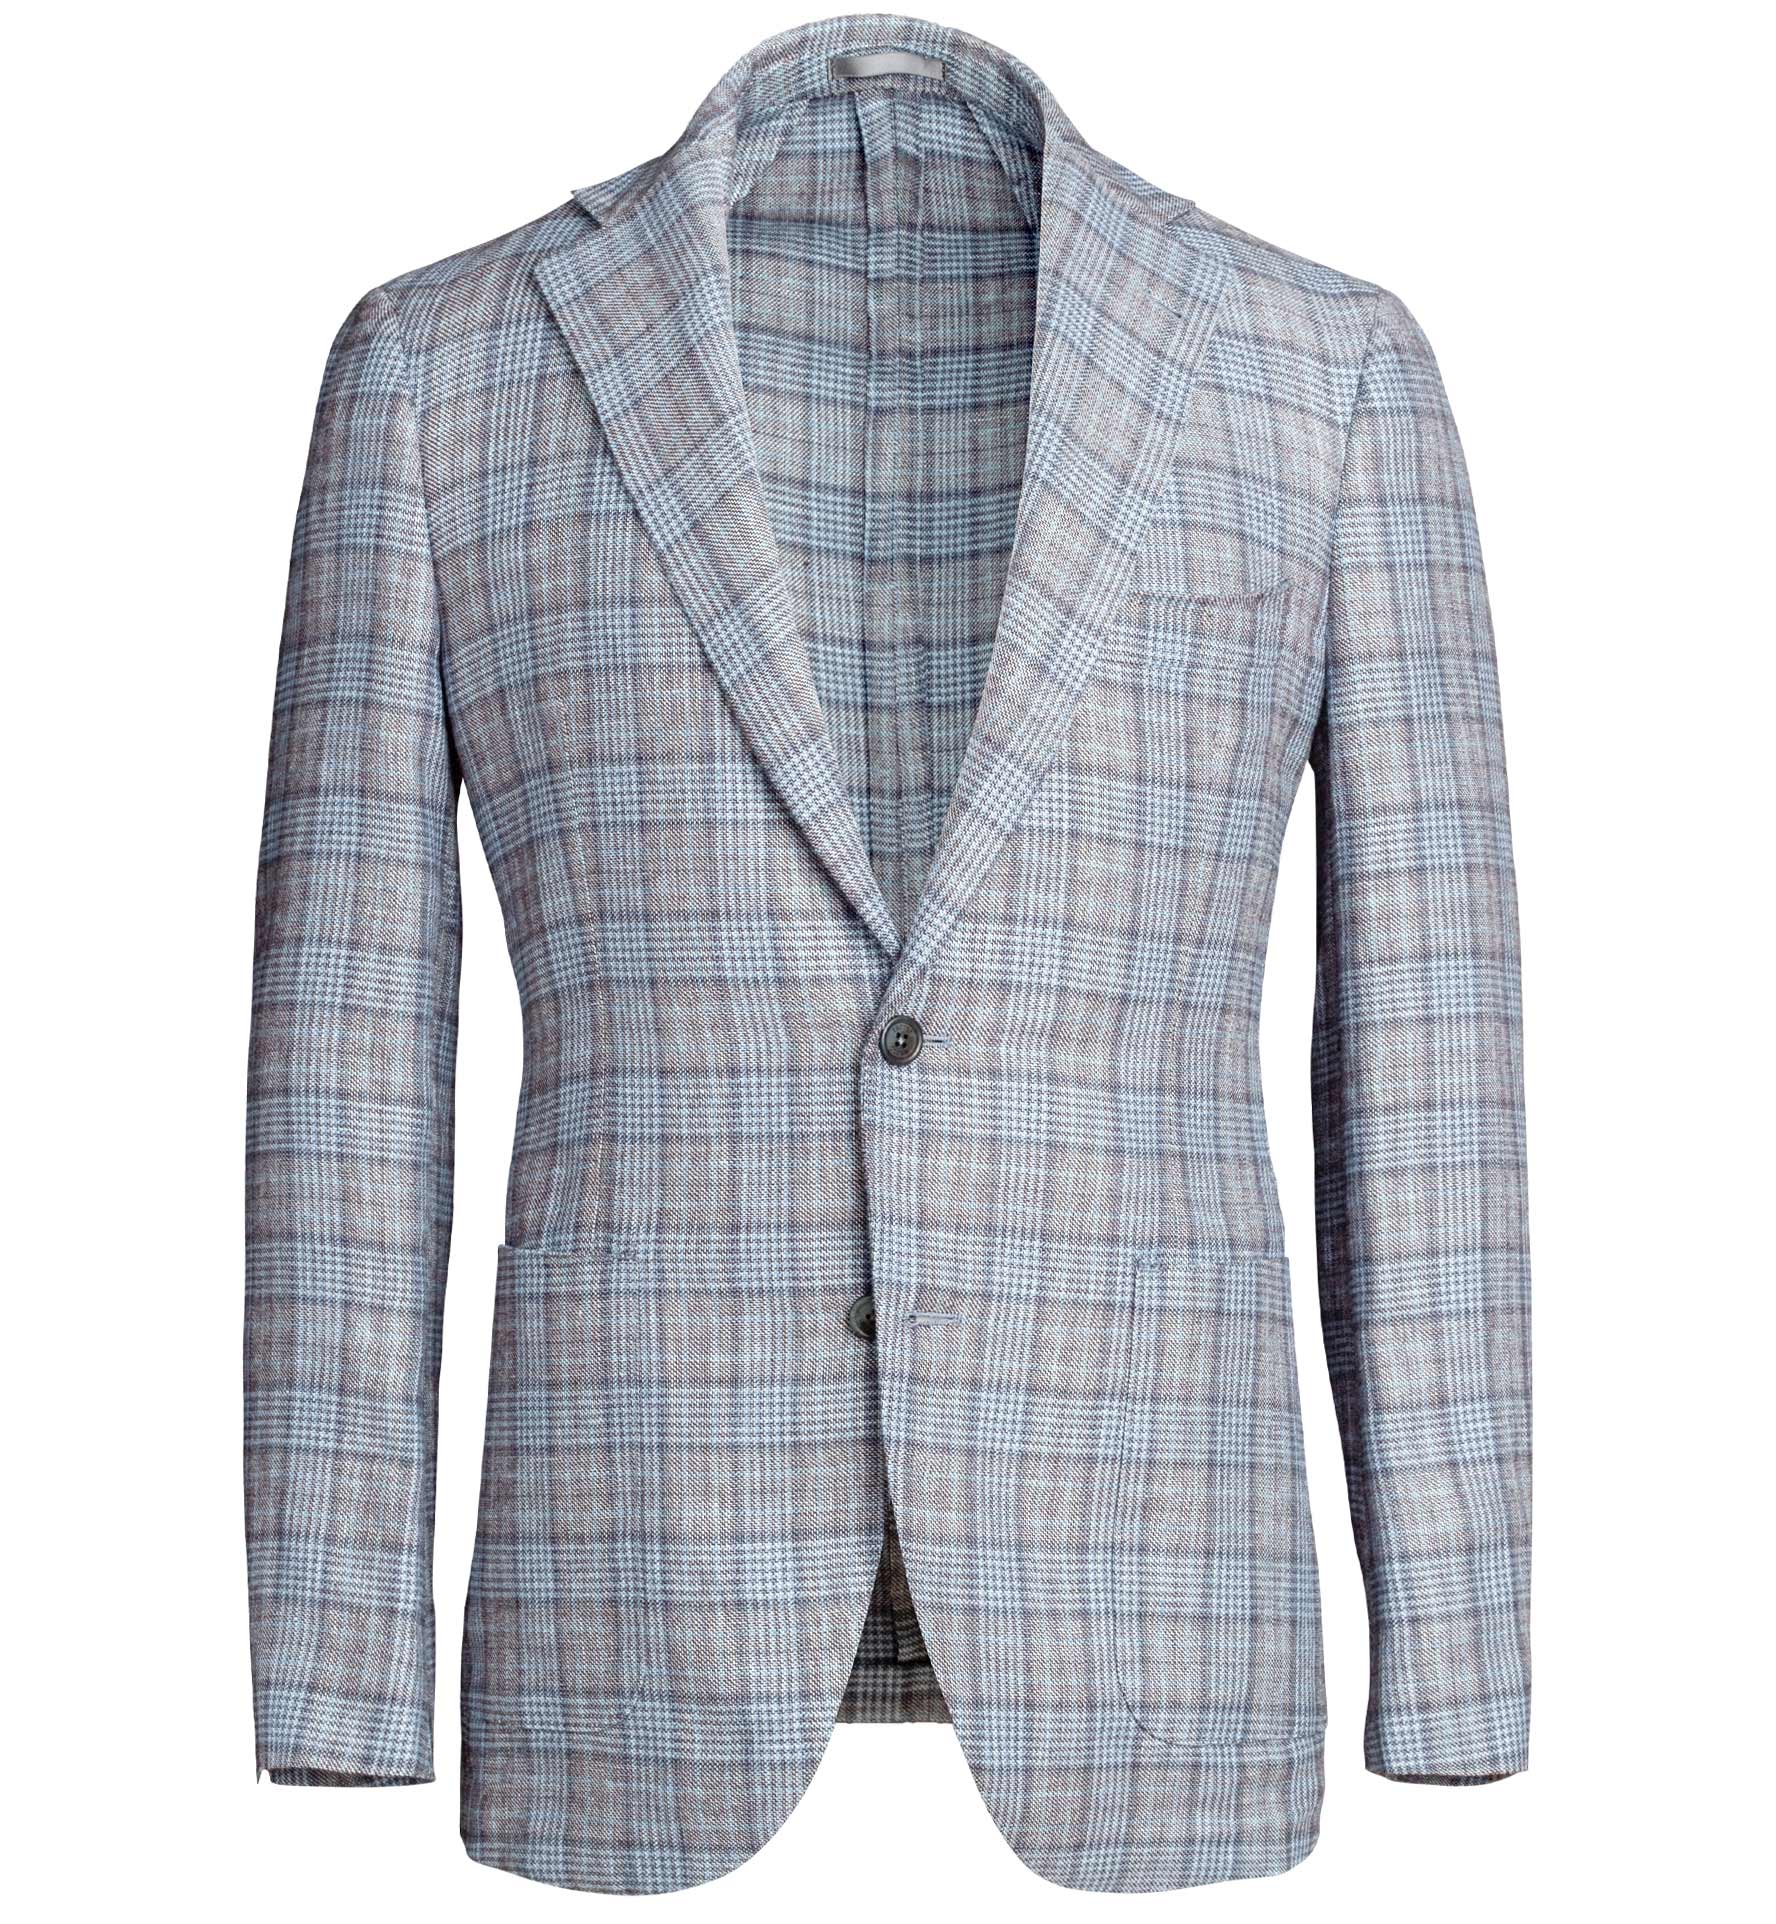 Zoom Image of Bedford Light Grey Prince of Wales Linen and Wool Jacket